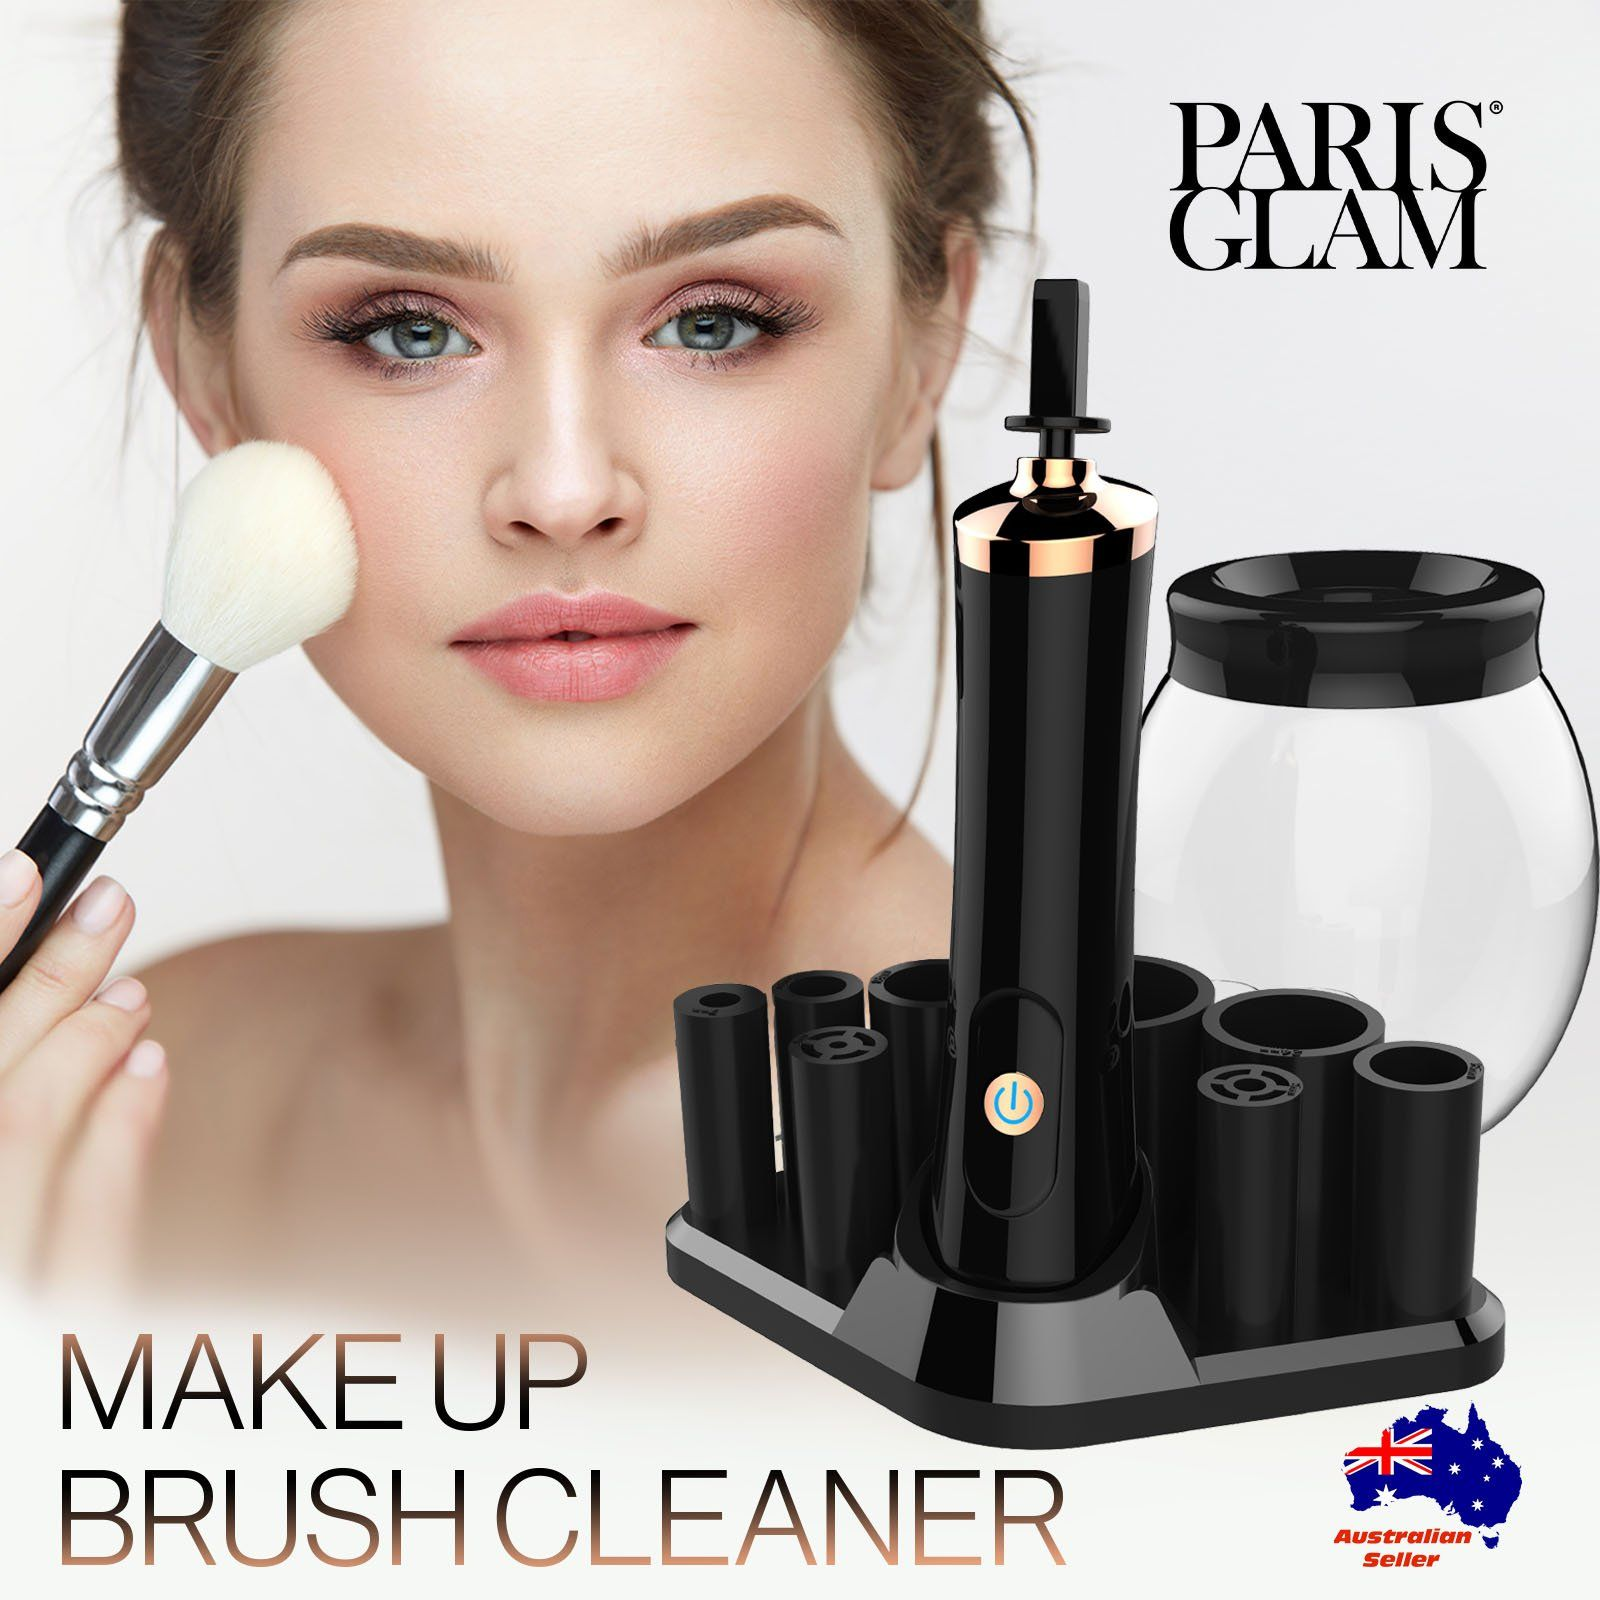 Photo of Paris Glam Makeup Brush Cleaner Electric Make-up Brush Cosmetic Cleanser & Dryer